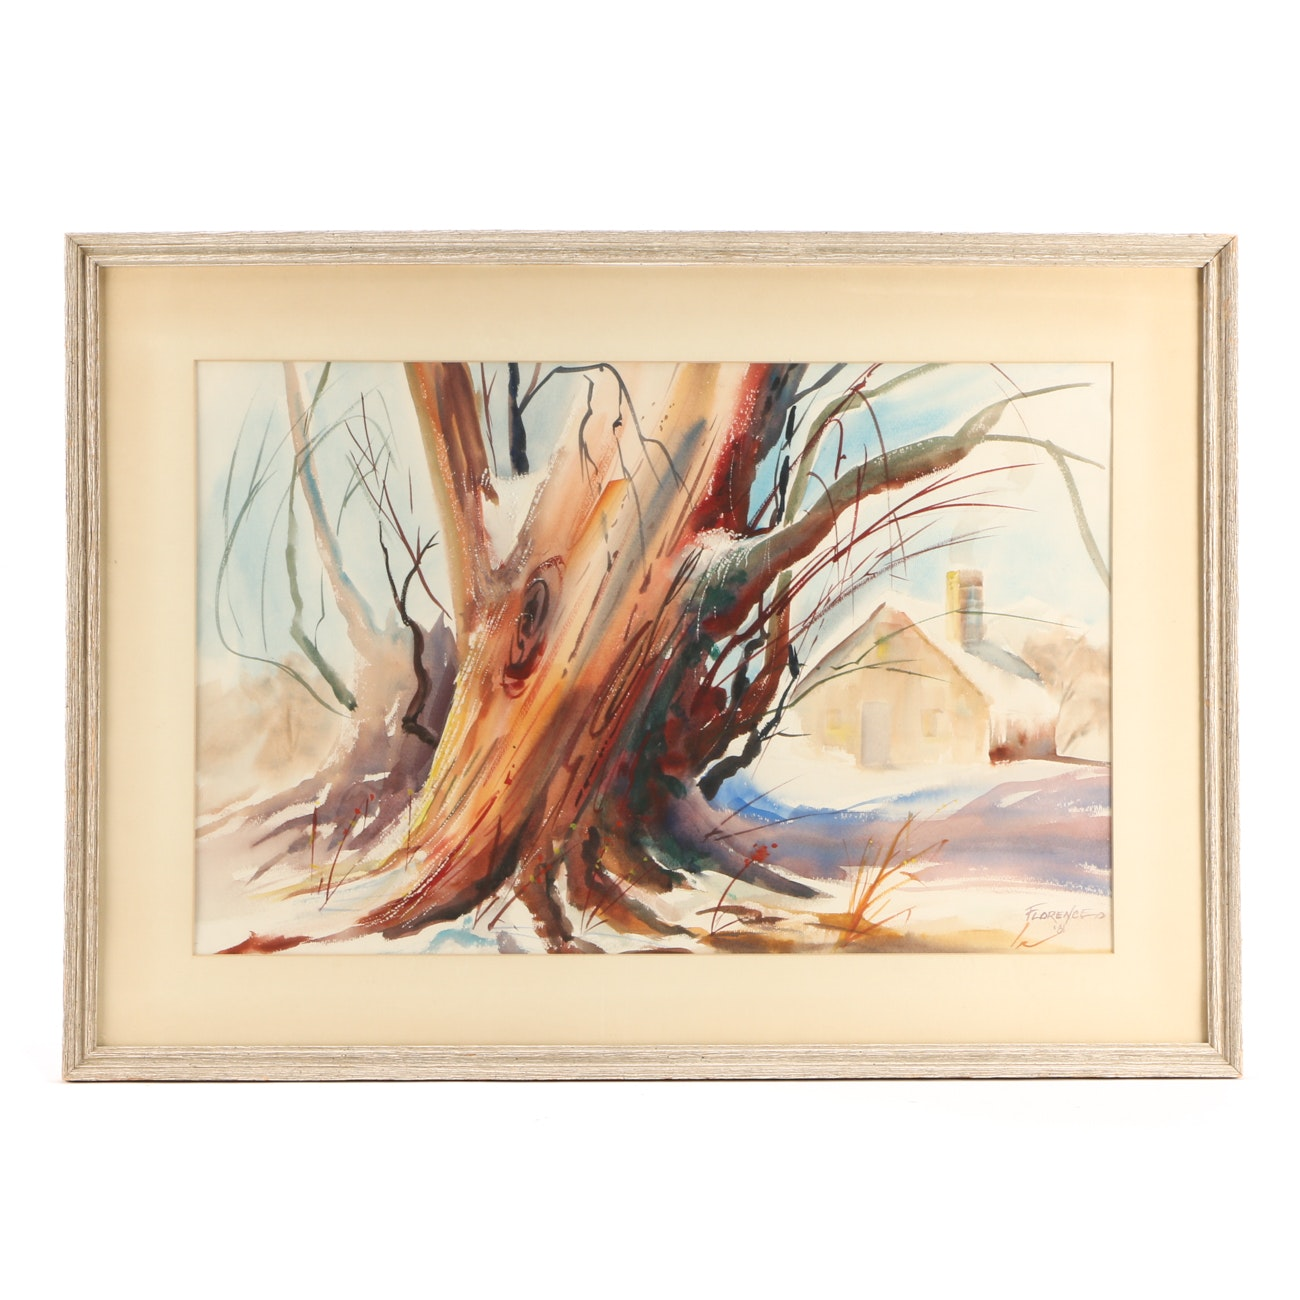 Florence Vintage Watercolor Painting of Tree in Winter